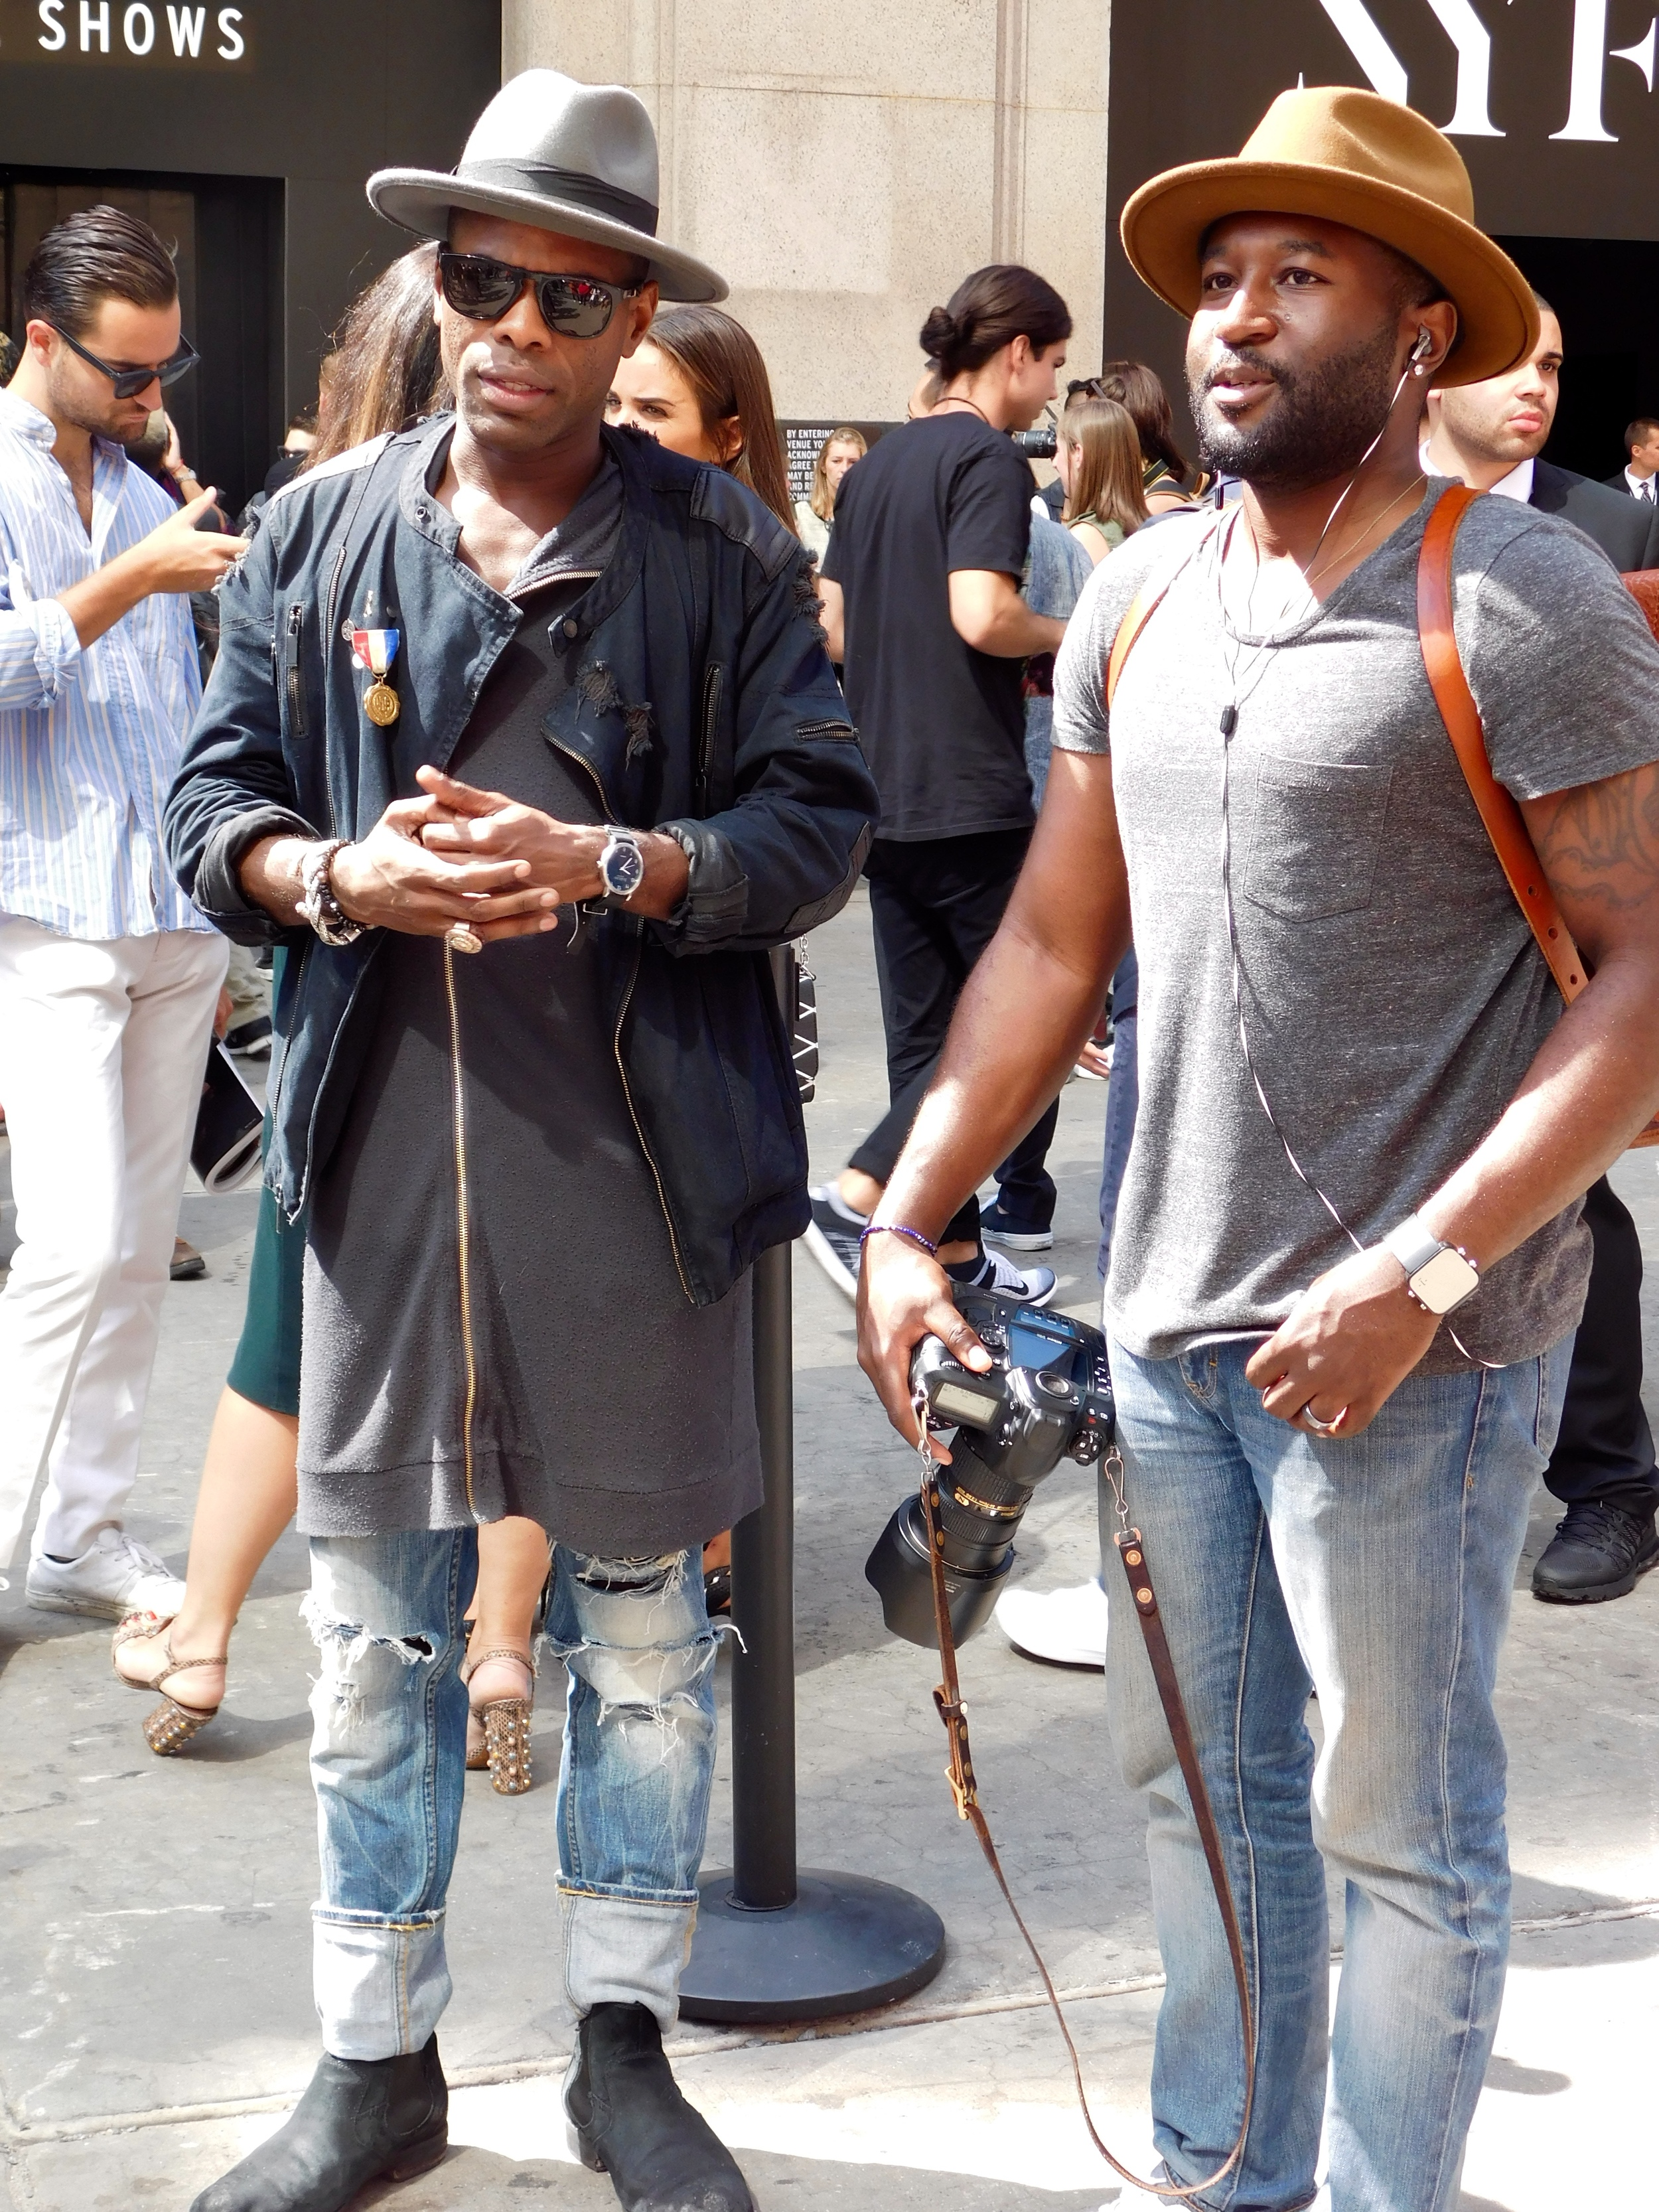 Kieno Benjamin of GQ and George Elder for Four Pins killing it in the Wide Brim Fedoras.